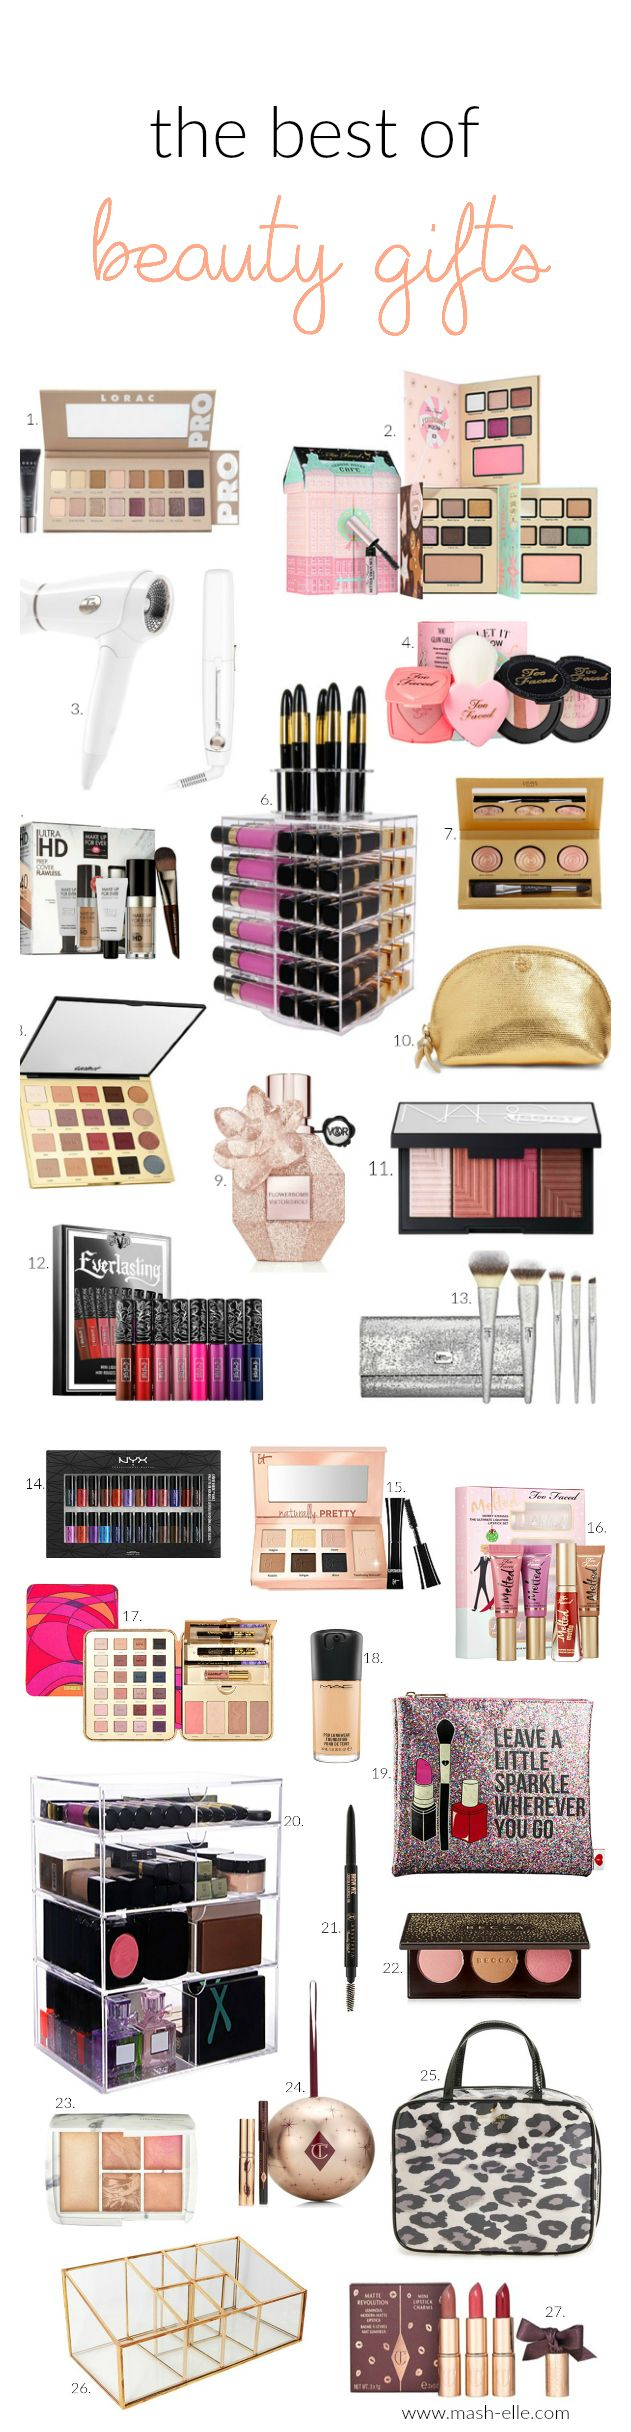 Kat Von D, Charlotte Tilbury, NYX, Sephora, Kate Spade, HOURGLASS, MAC and Target beauty! Perfect for a unique and fun gift for the women in your life!